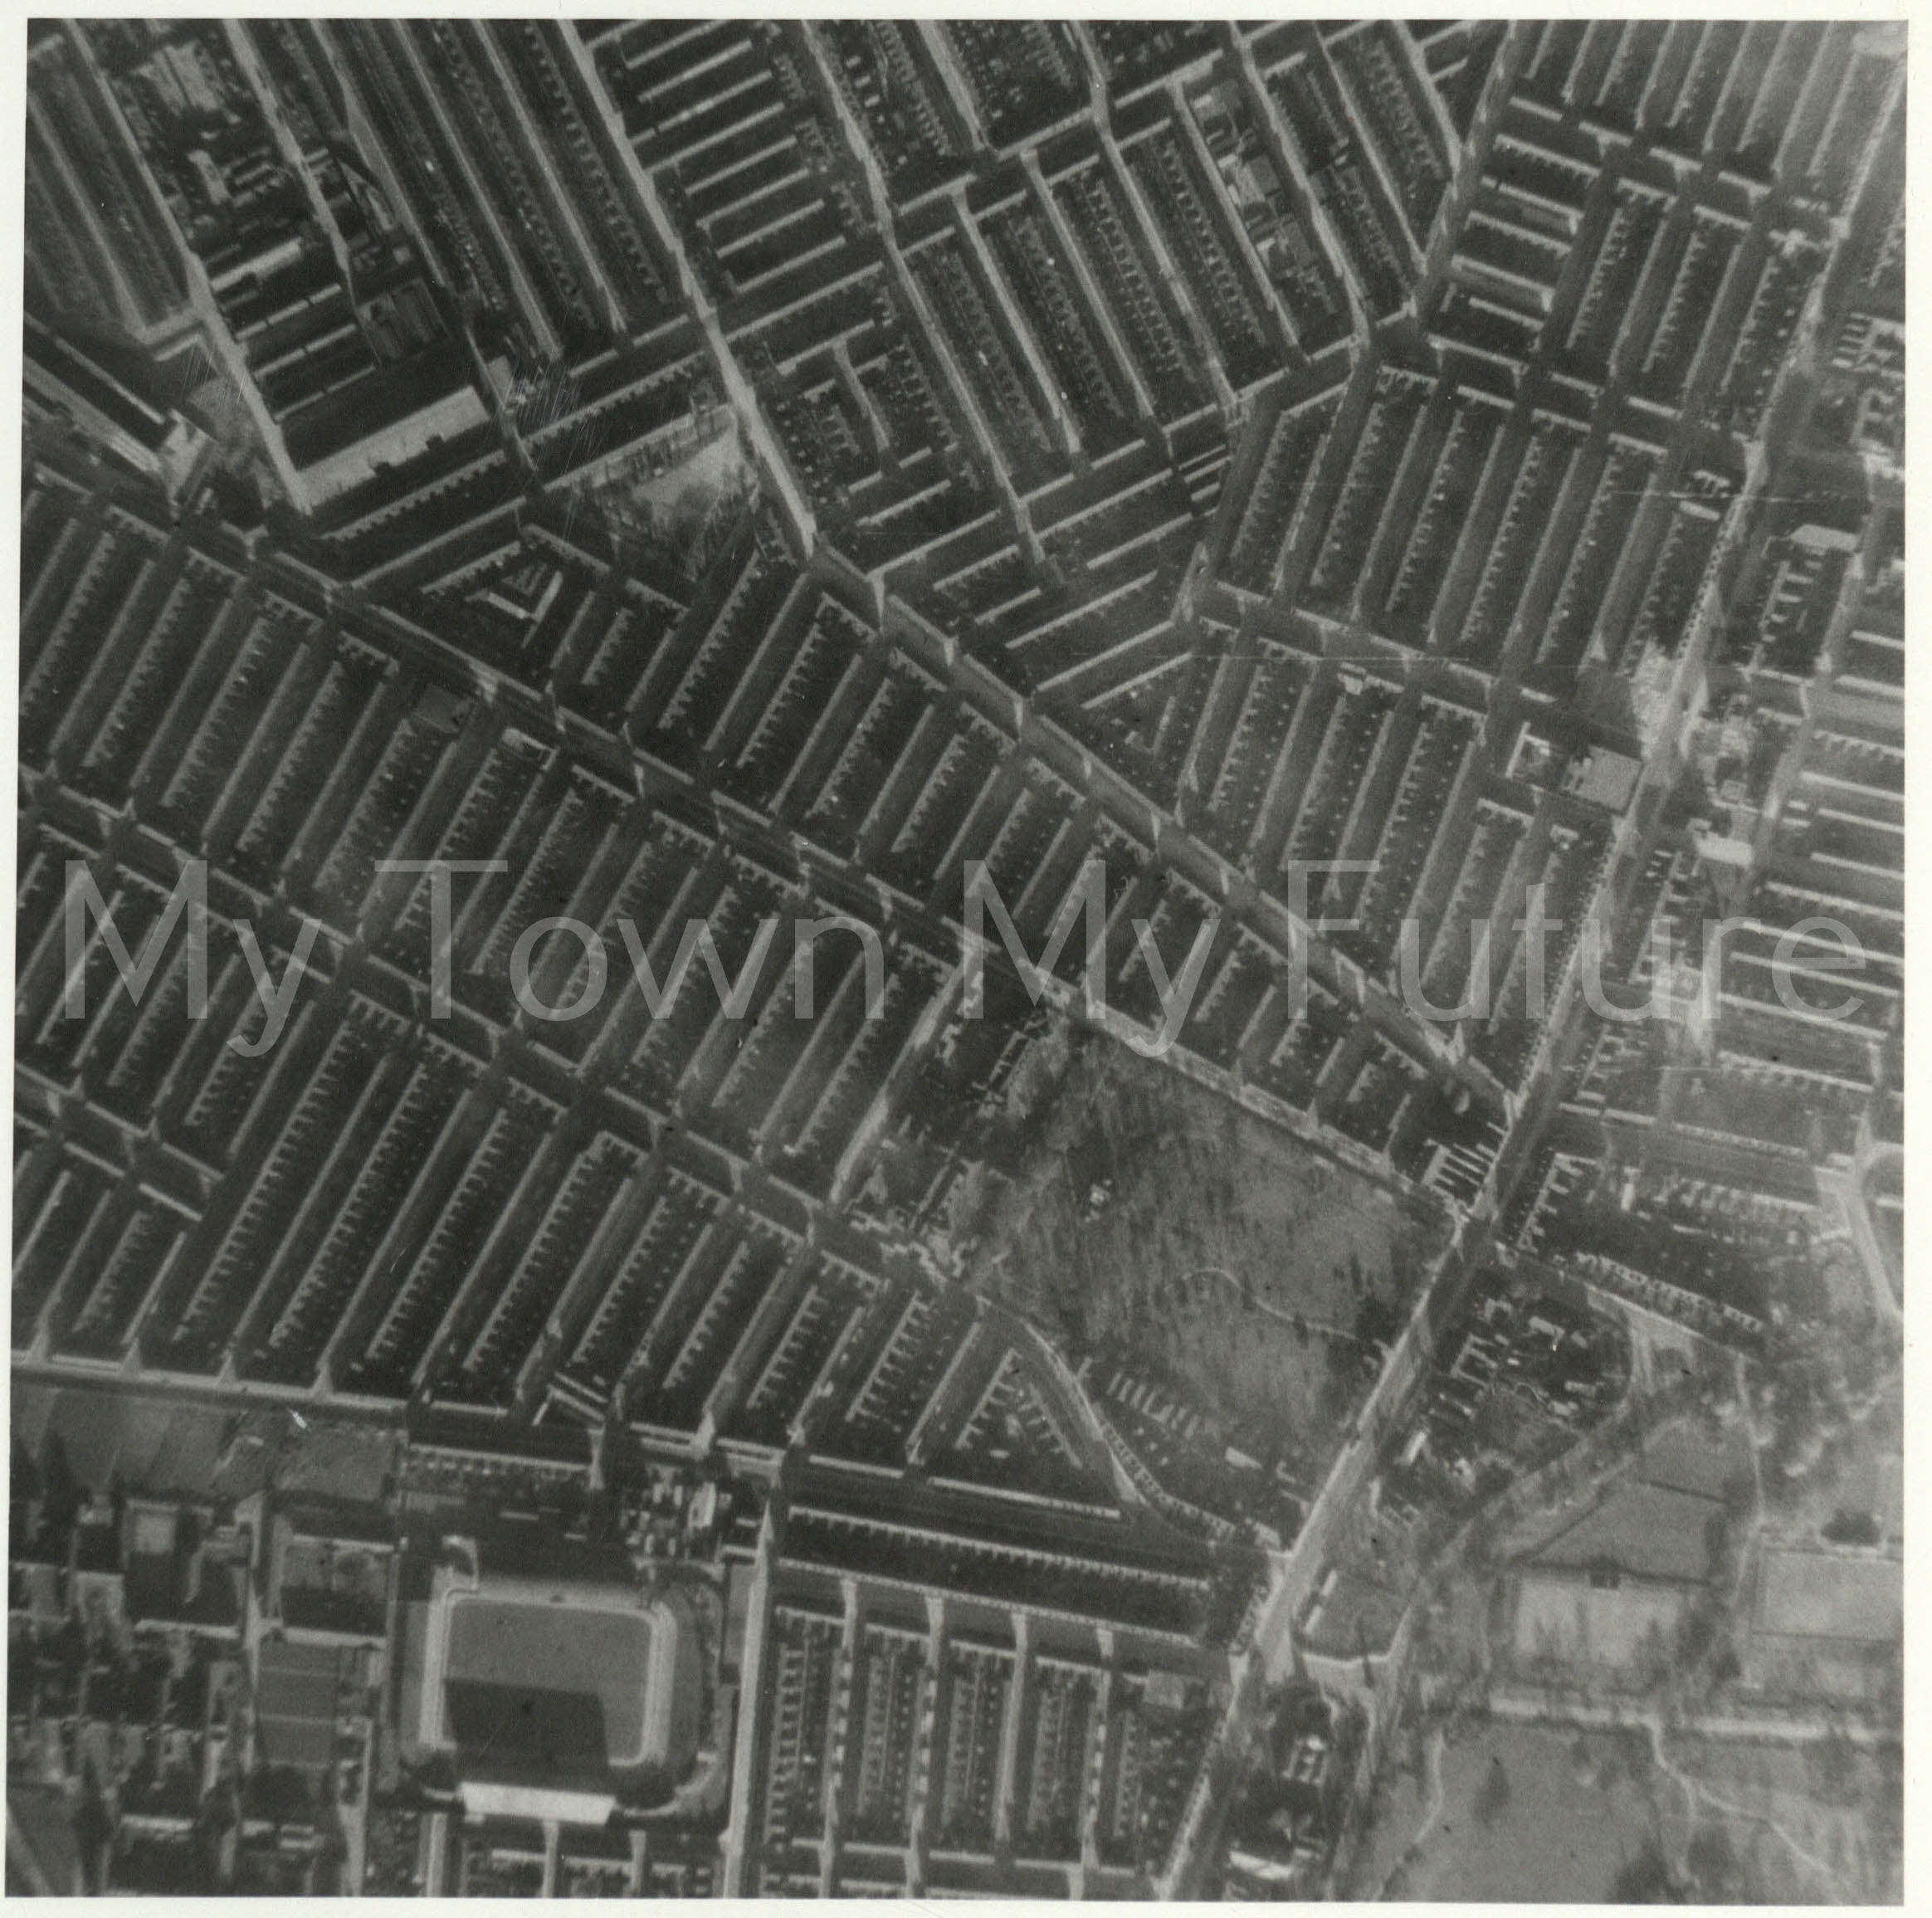 Middlesbrough Football Club & Surrounding Area, 13 November 1946, R.A.F.